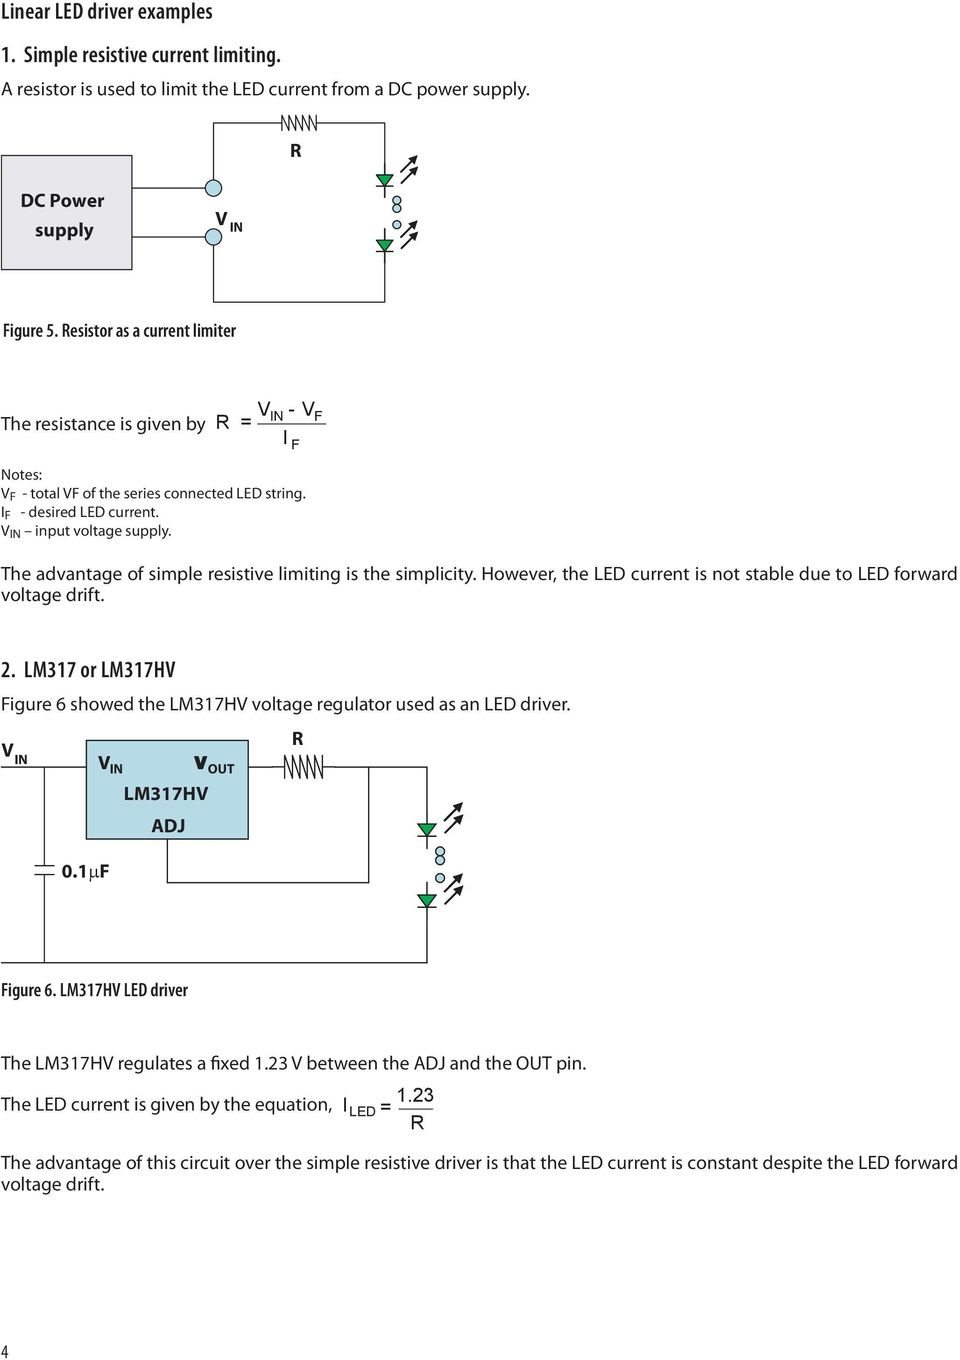 Application Note Pdf Boost Led Driver For Hb Leds F The Advantage Of Simple Resistive Limiting Is Simplicity However Current